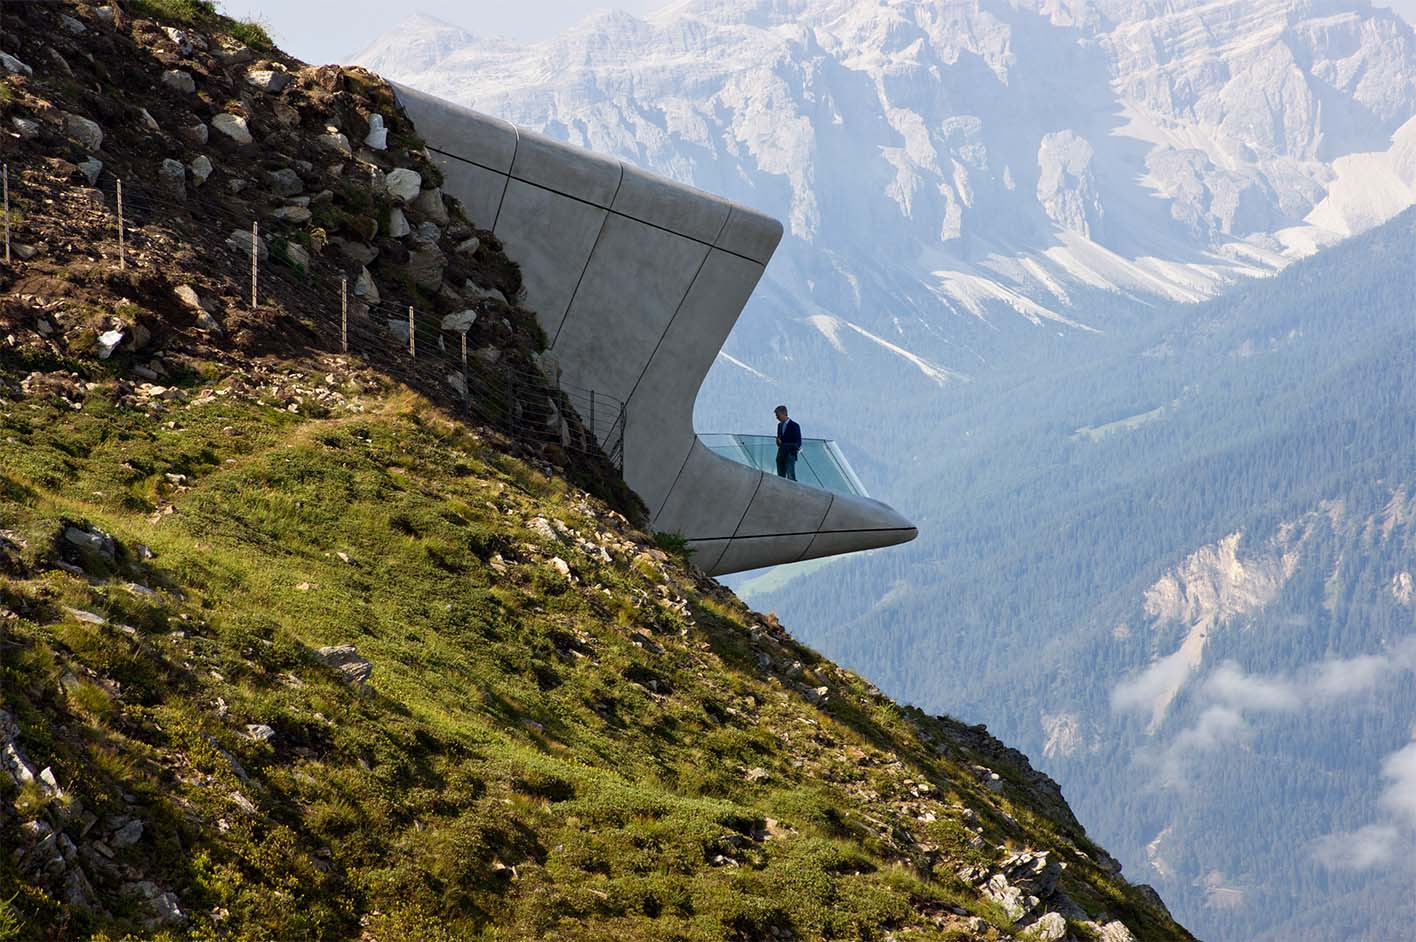 Messner Mountain Museum Corones, Plan de Corones, Italy, by Zaha Hadid Architects - Image courtesy of WAF